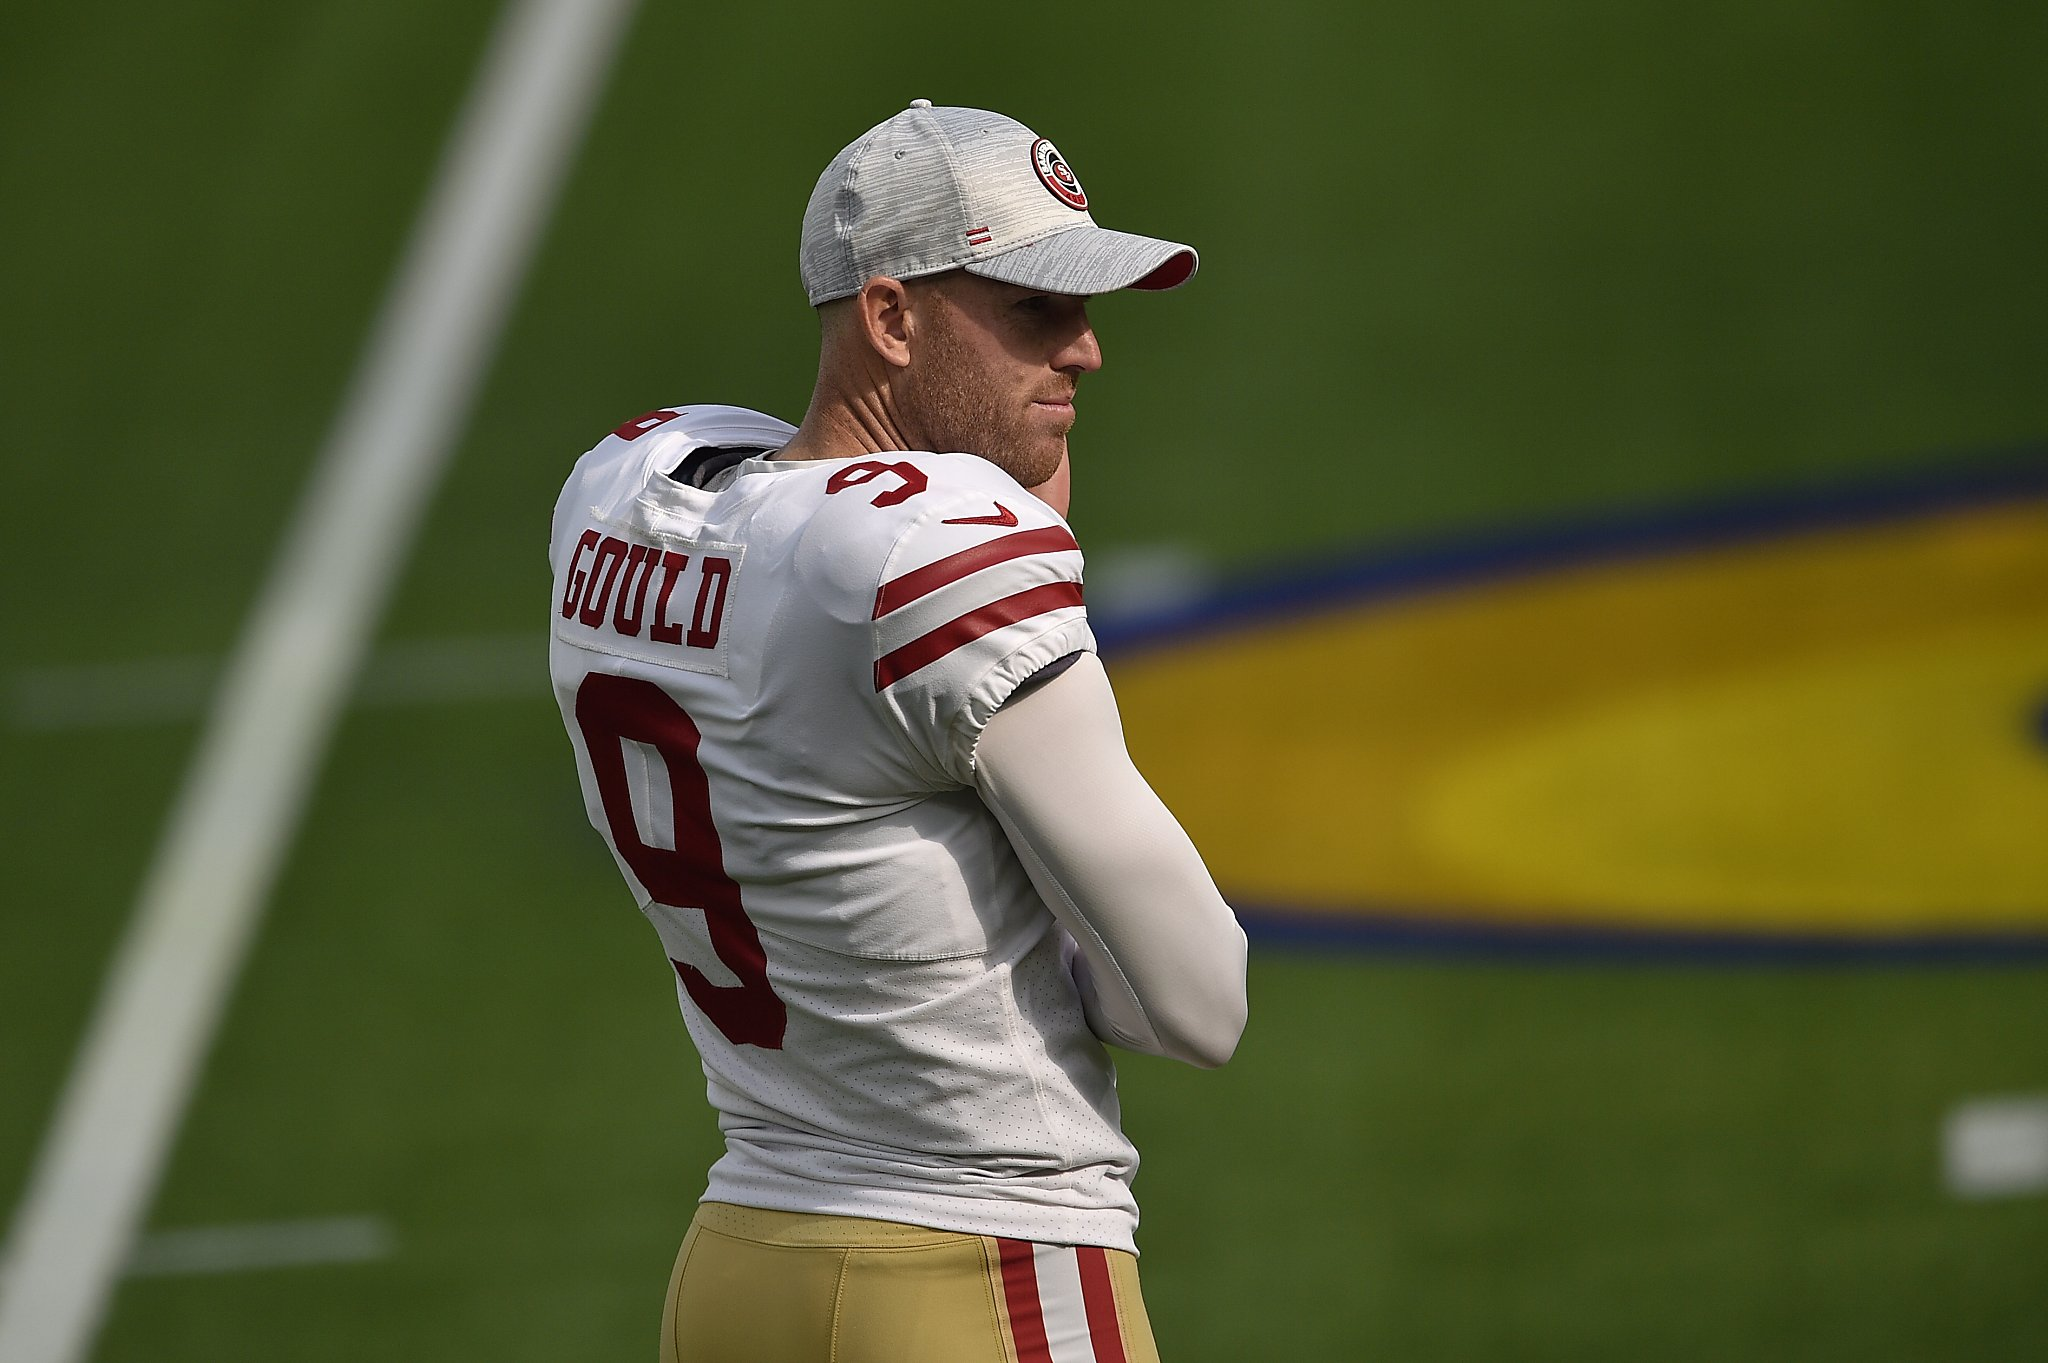 Will the 49ers keep their kicker? Decision looming on Robbie Gould